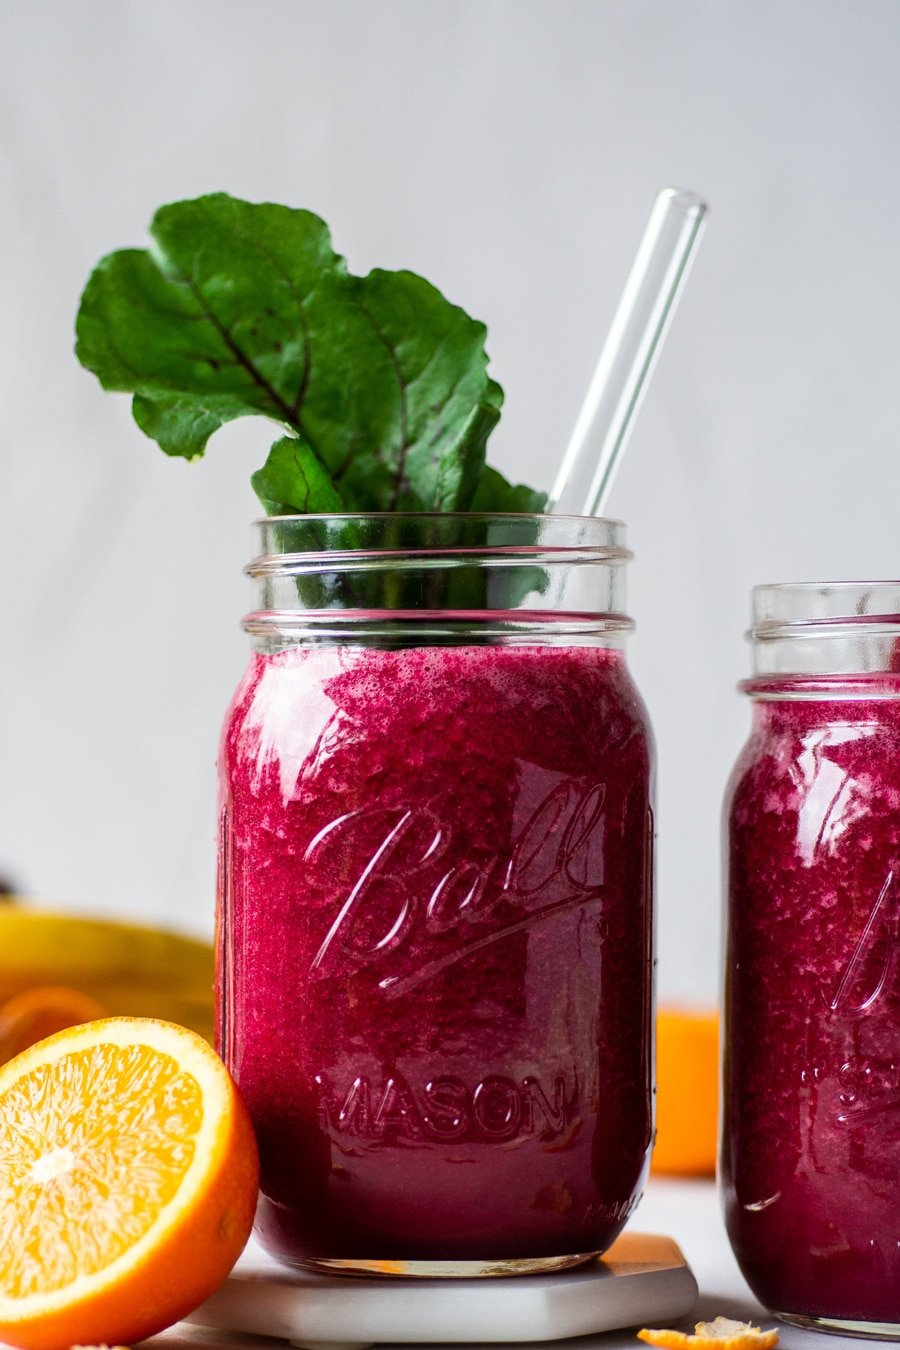 Straight on shot of 2 glass ball jars filled with a vibrant pink / red glowing beet smoothie. One jar has a beet green tucked into the jar. On a light background surrounded by fresh cut fruit.